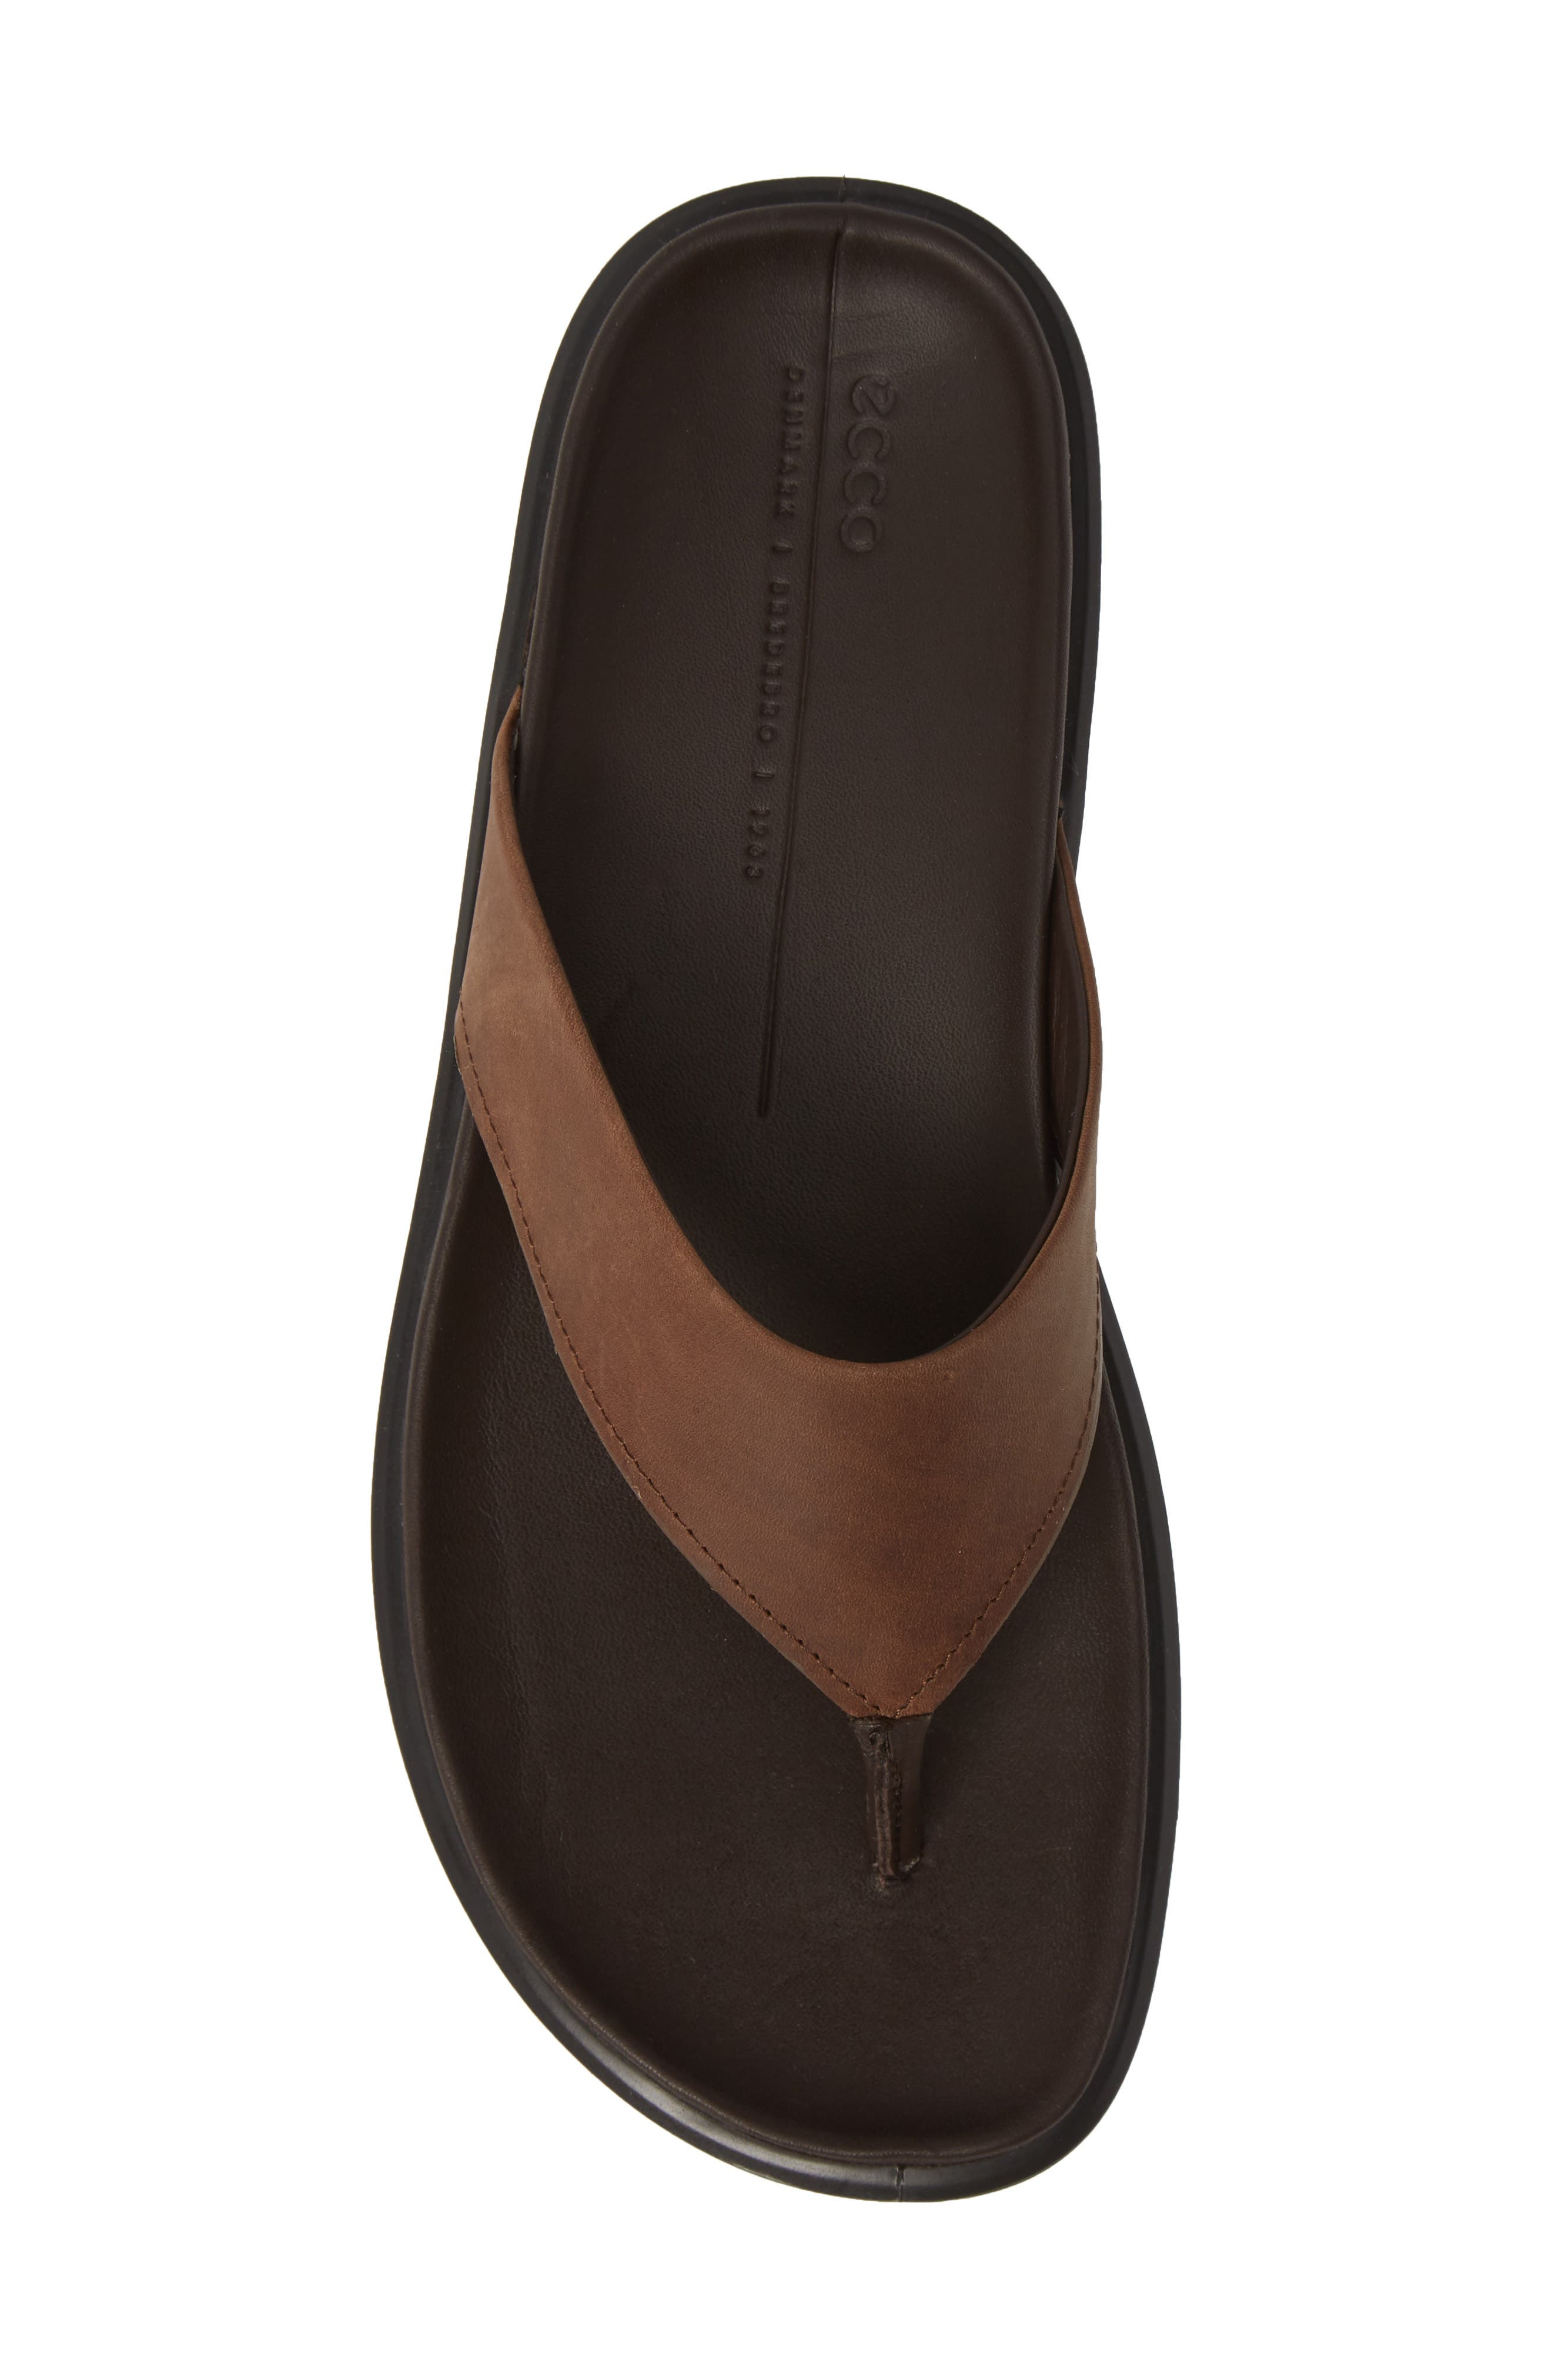 ECCO, Flowt LX Flip Flop, Alternate thumbnail 5, color, COCOA BROWN OILED NUBUCK